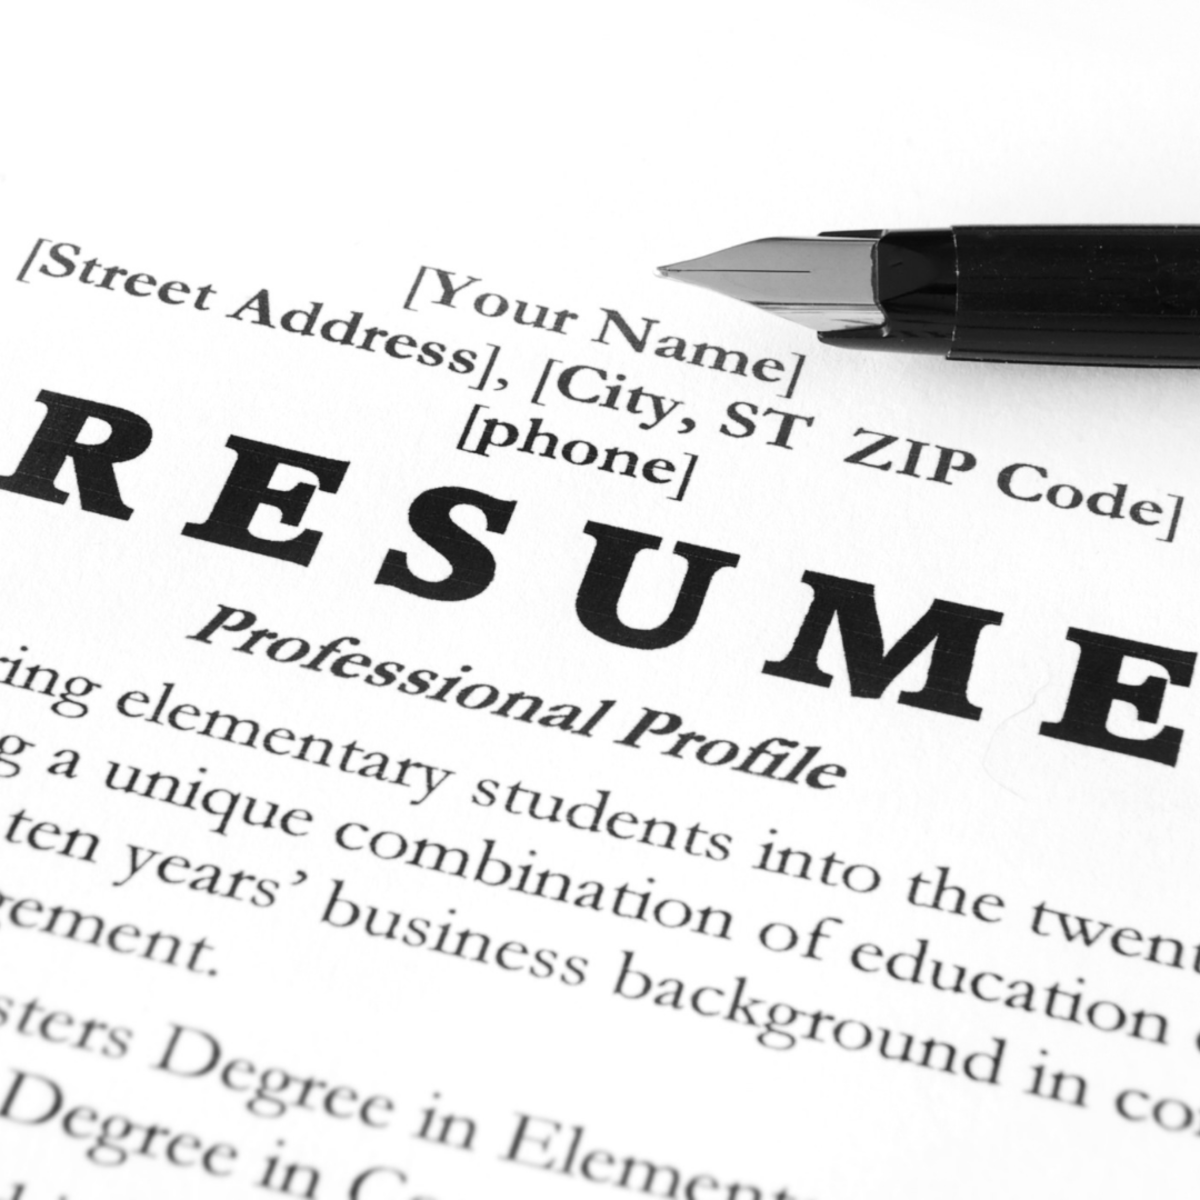 A well-crafted resume is key.